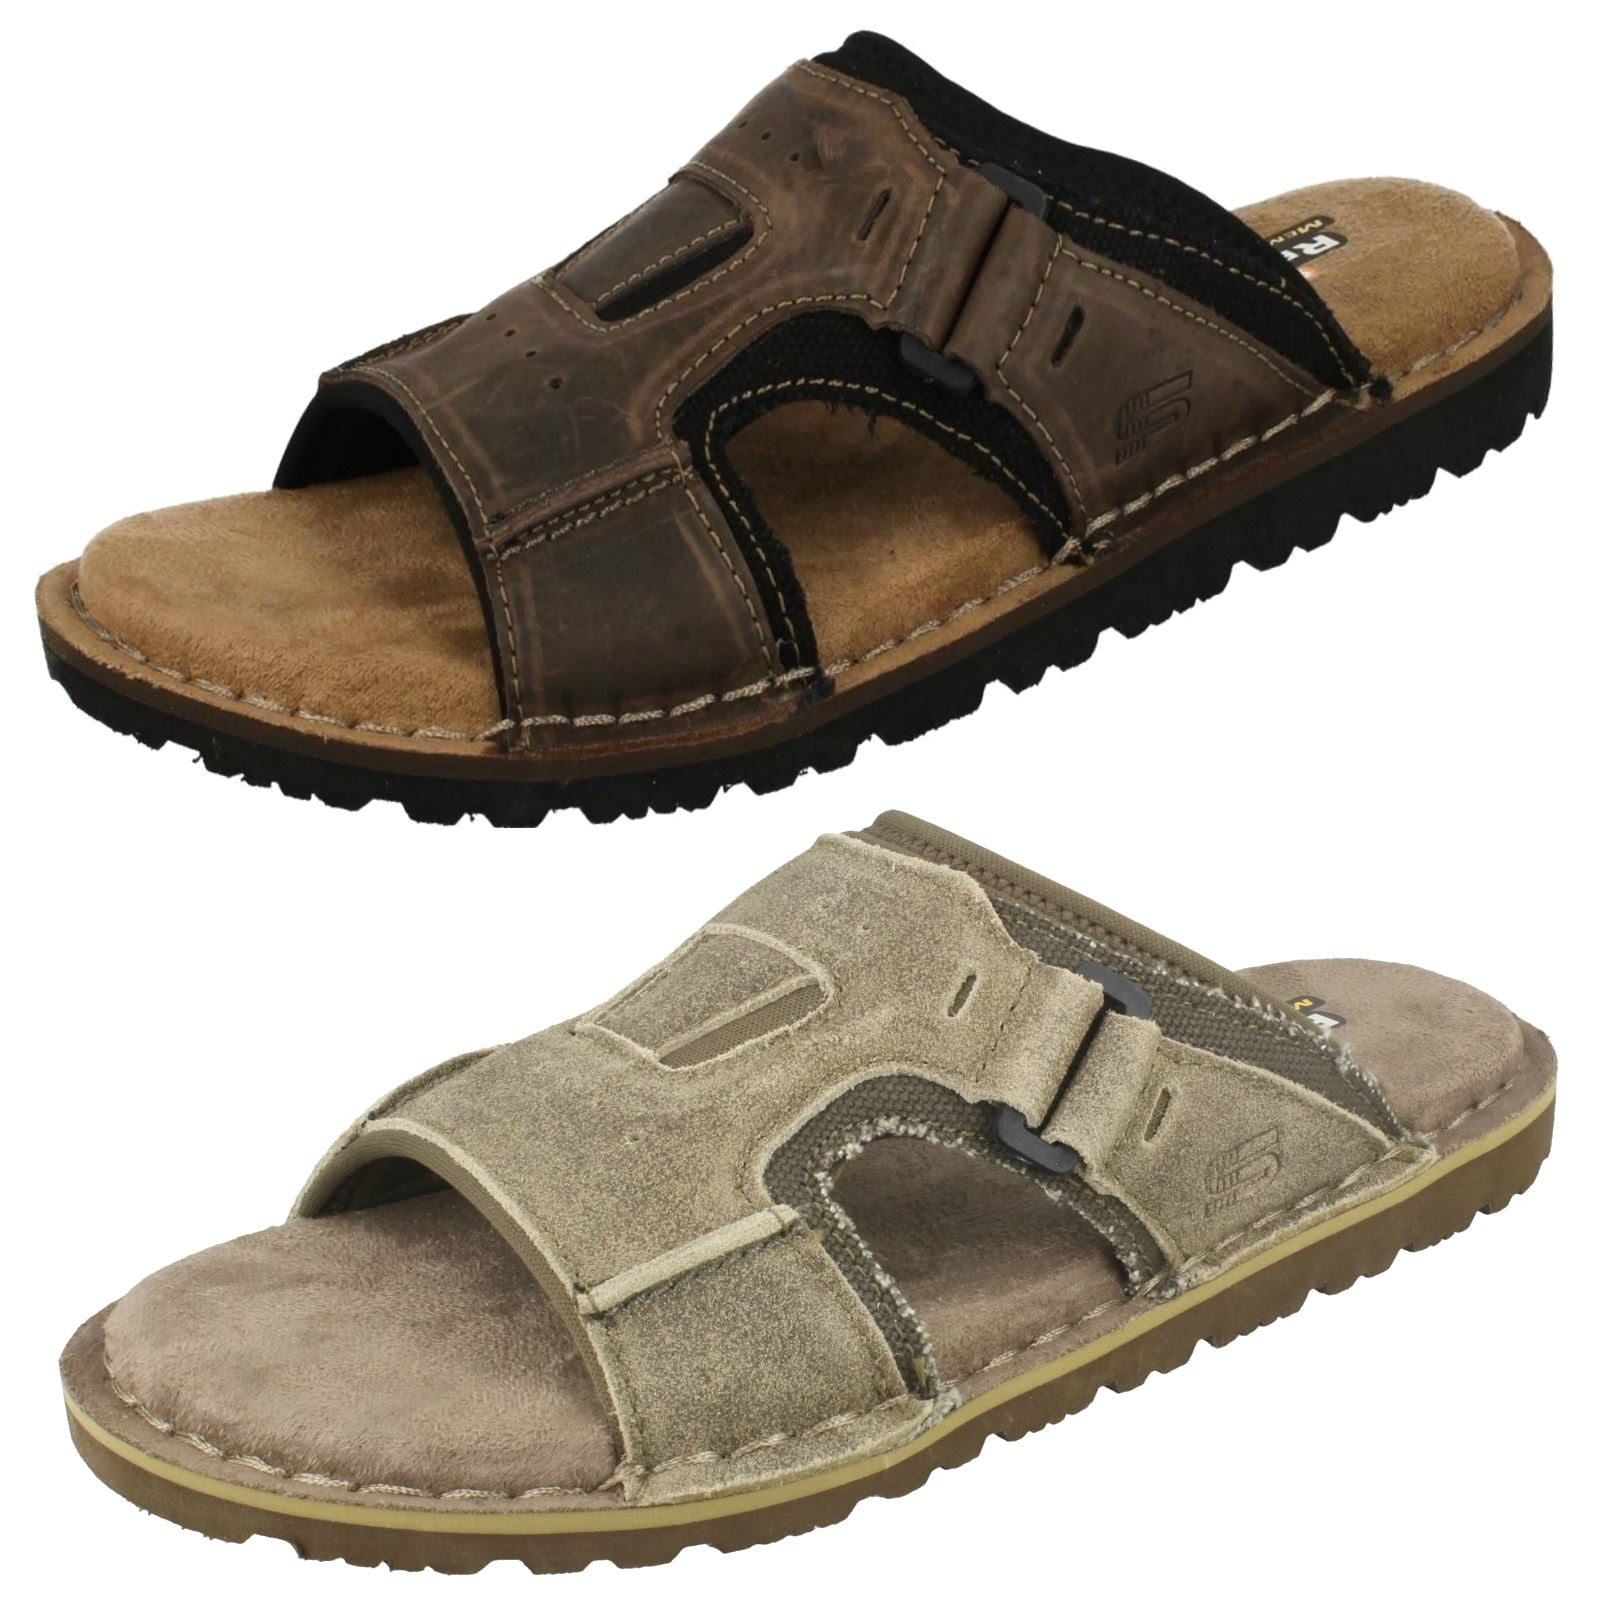 c5a6bb909102 Details about Mens Skechers Memory Foam Sandals - Golson 64148